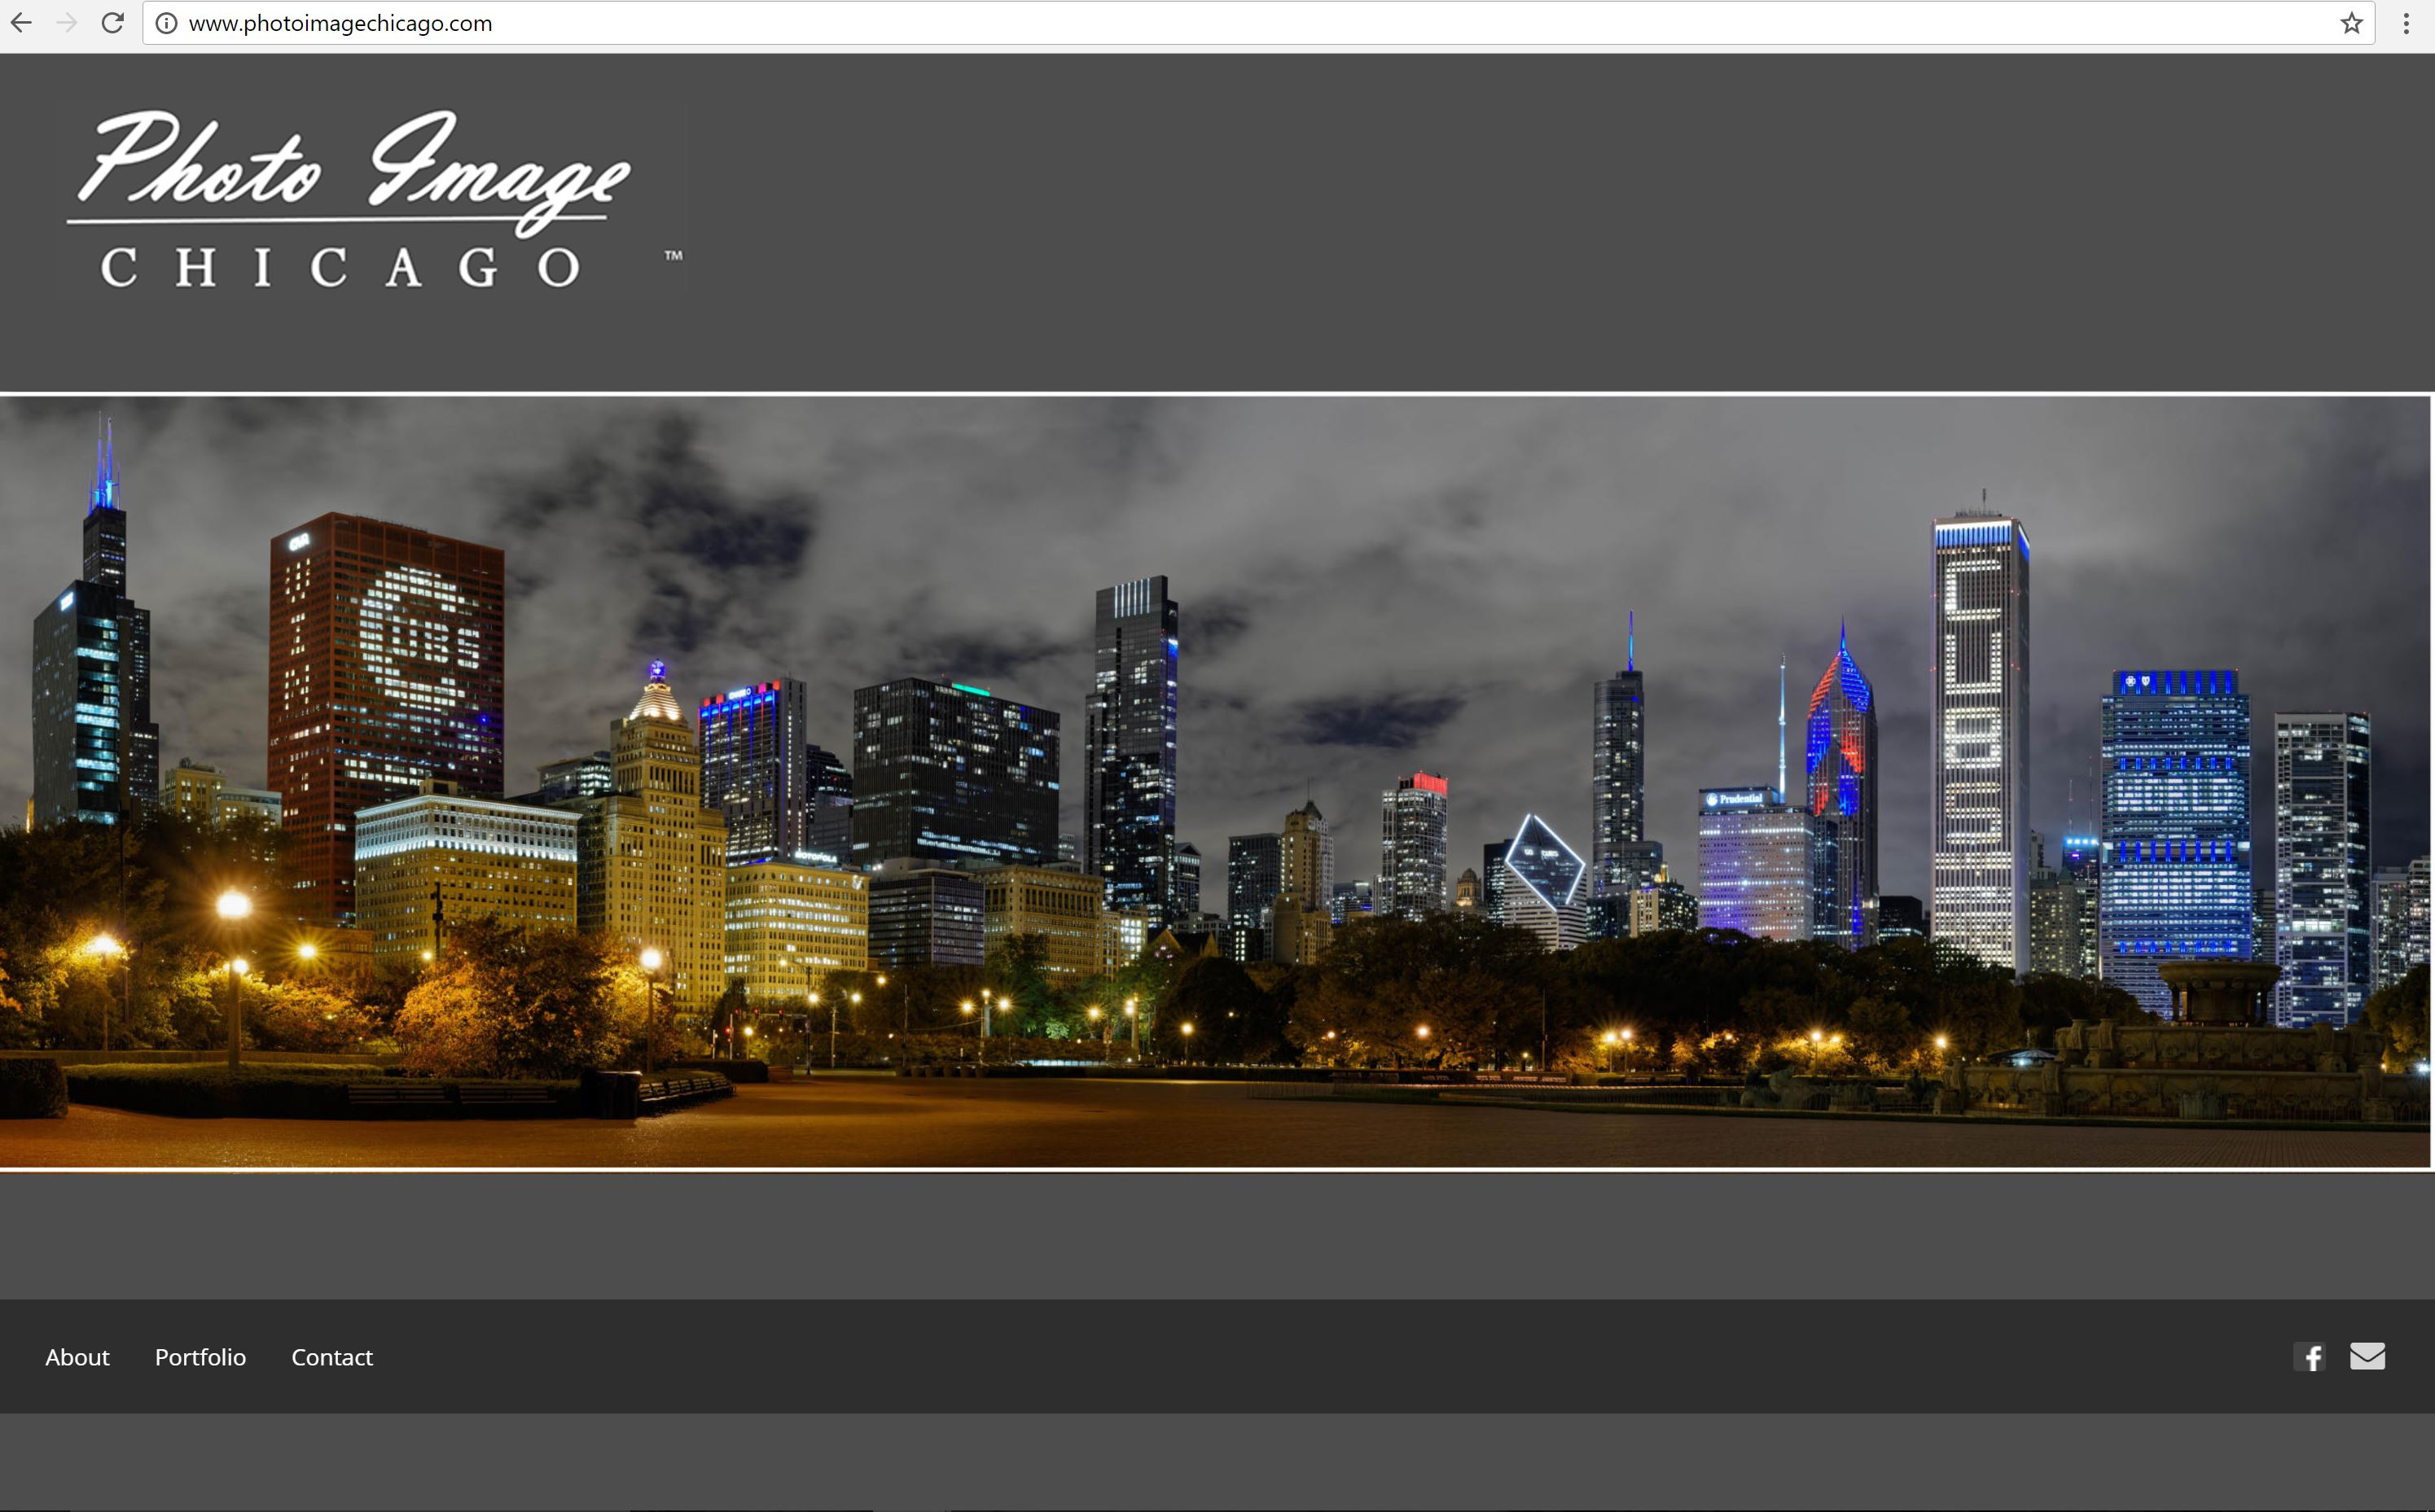 Photo Image Chicago Home Page